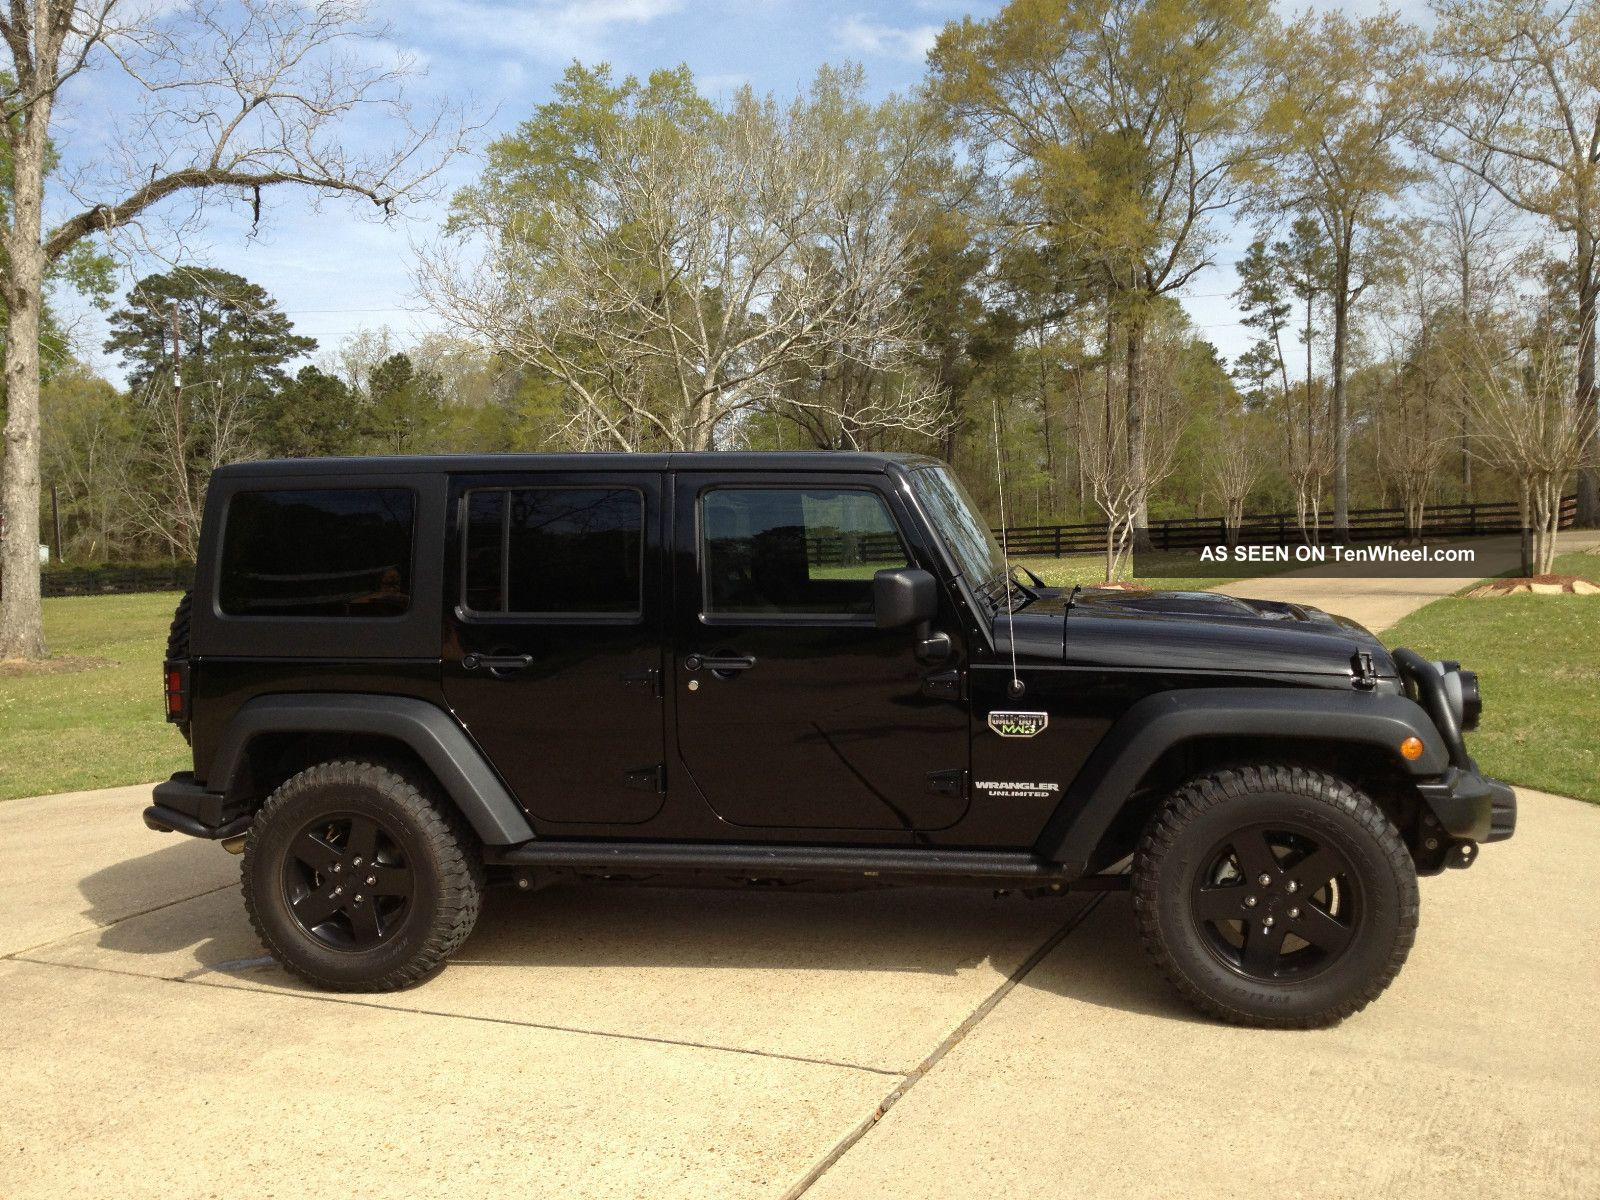 2012 jeep wrangler rubicon unlimited of duty mw3. Black Bedroom Furniture Sets. Home Design Ideas